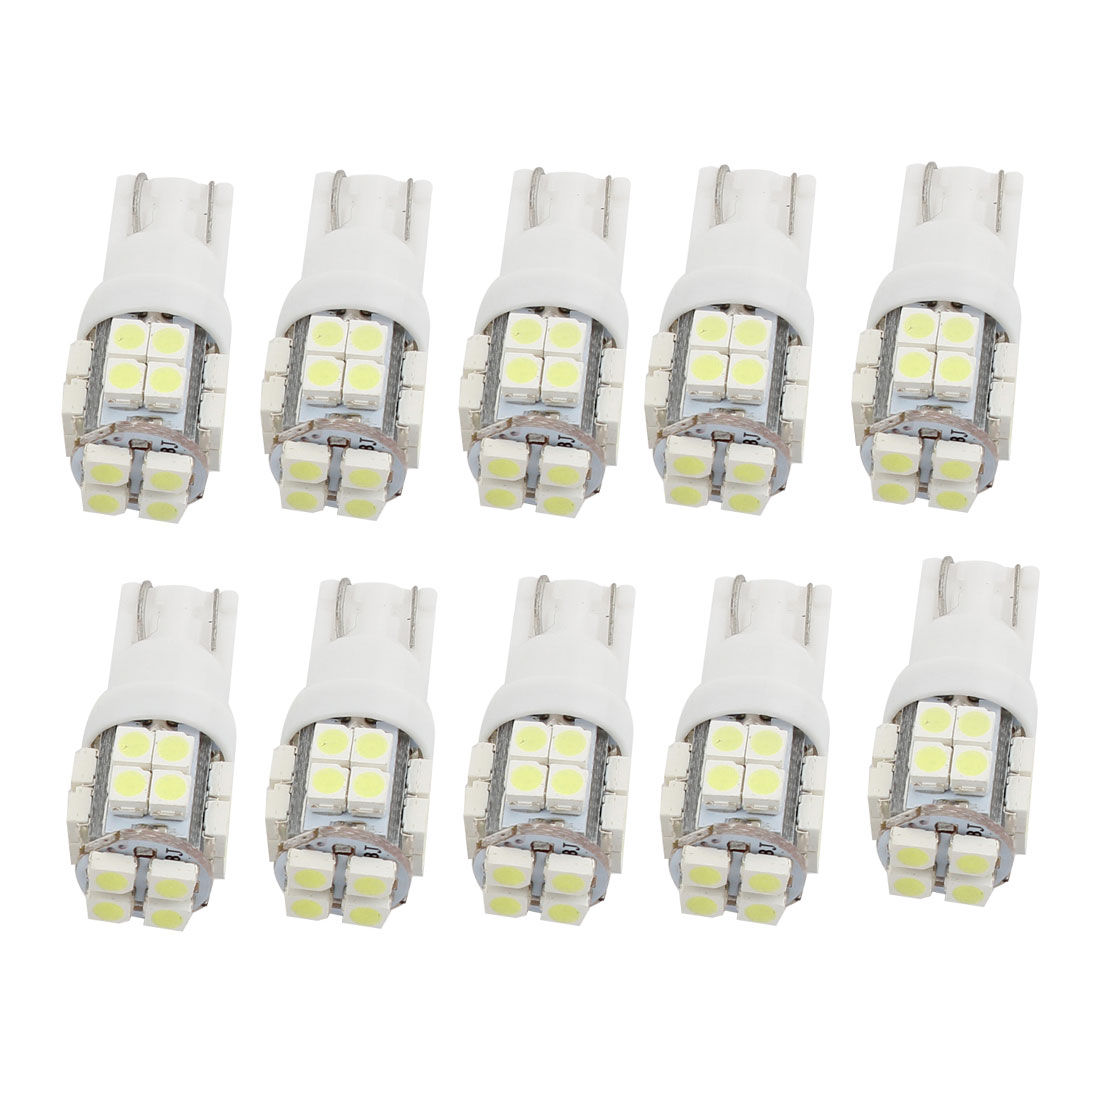 10 Pcs Car T10 W5W 1210 SMD 20-LED Wedge Light Dashboard Lamp Bulbs White Internal